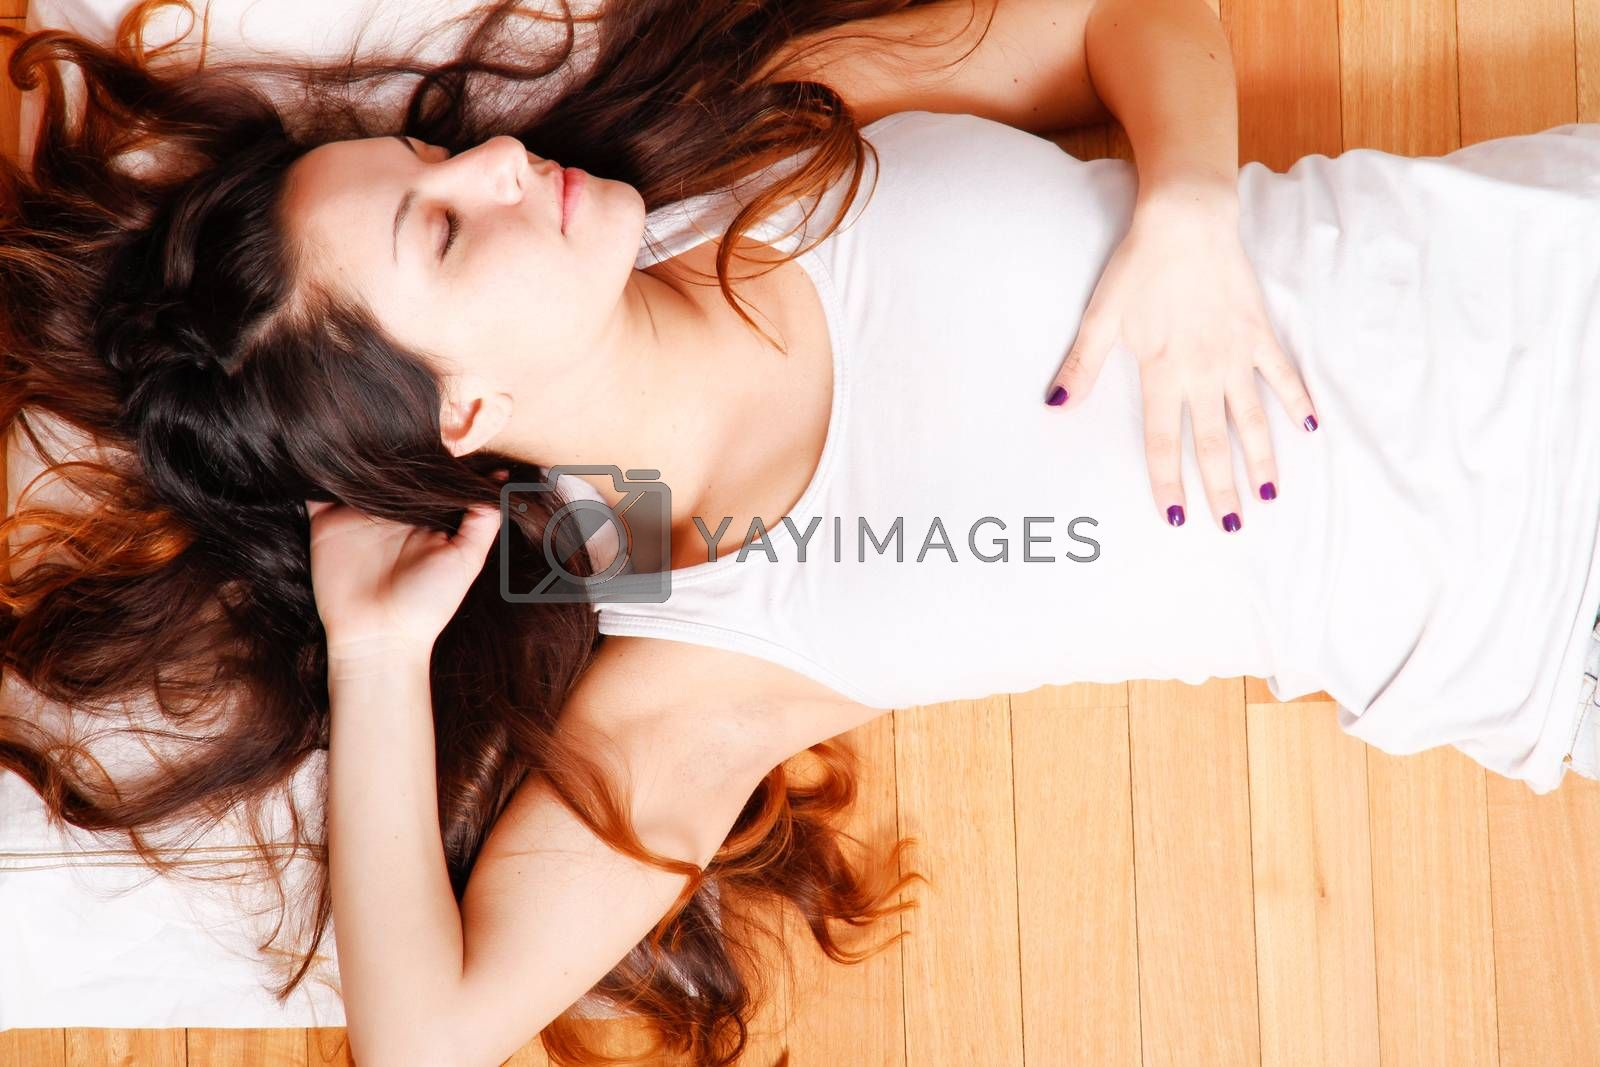 A young hispanic girl relaxing on the floor.